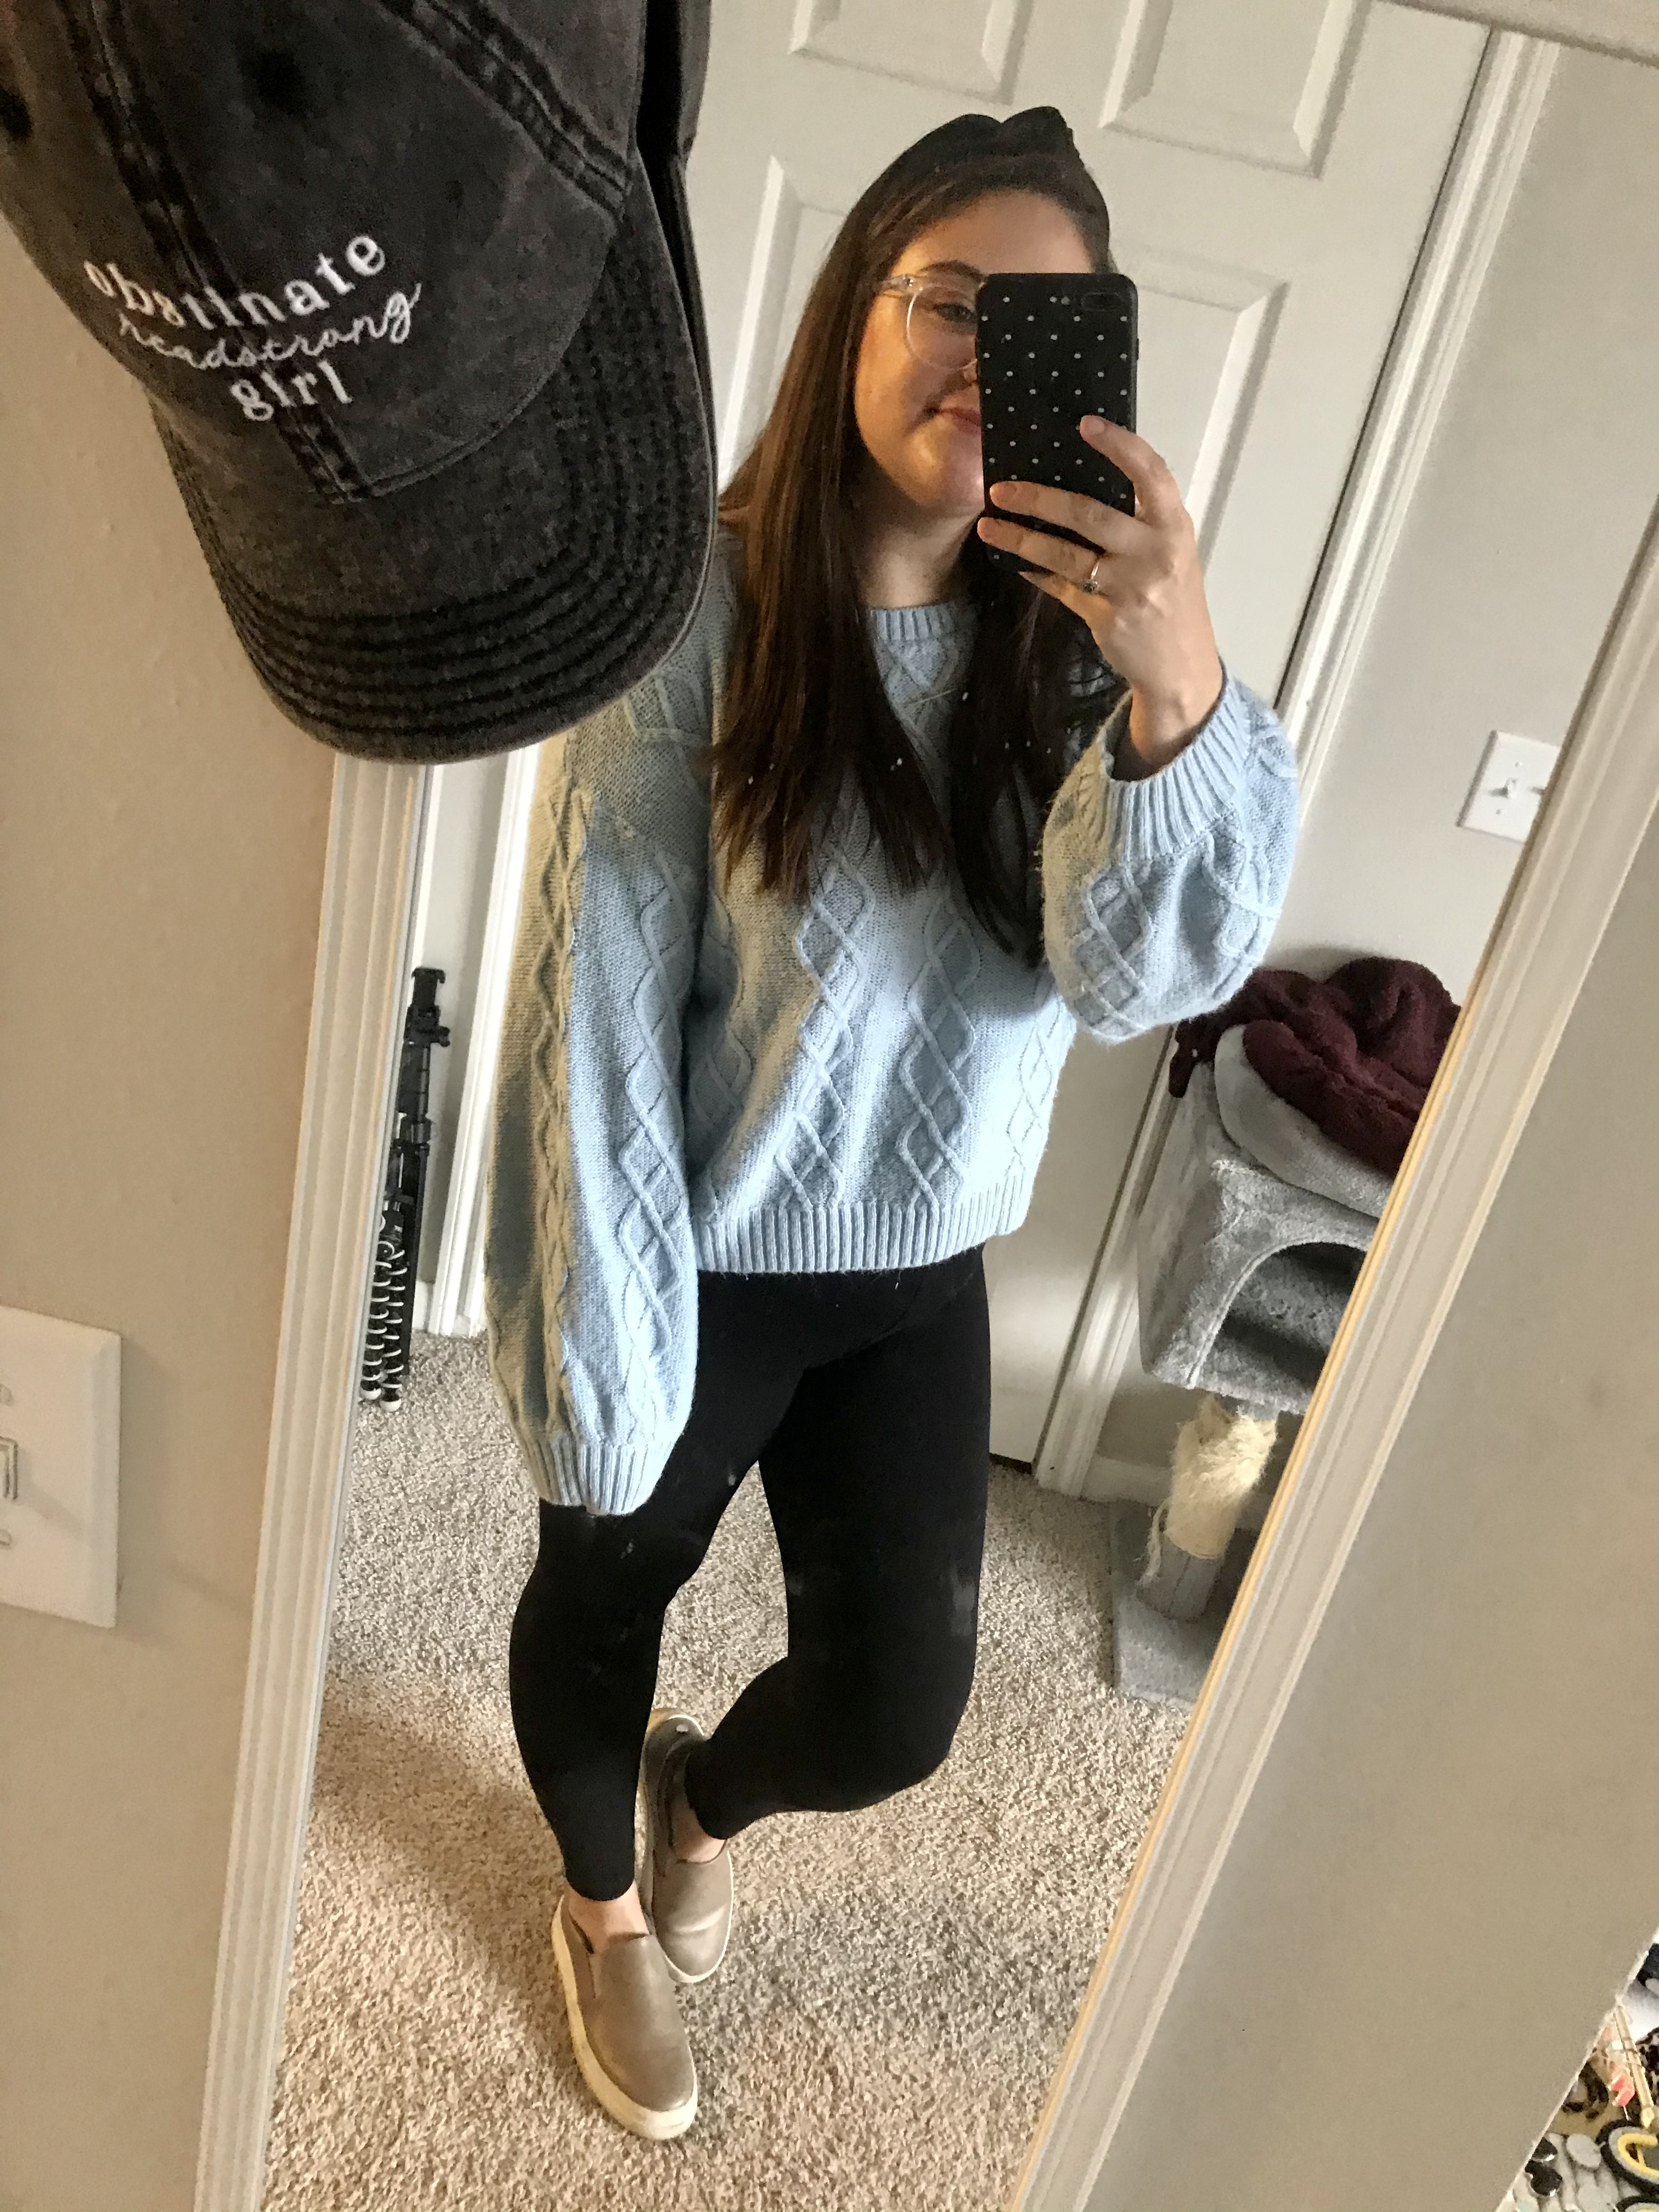 Girl in blue sweater and black leggings with grey slip on sneakers and black knot headband